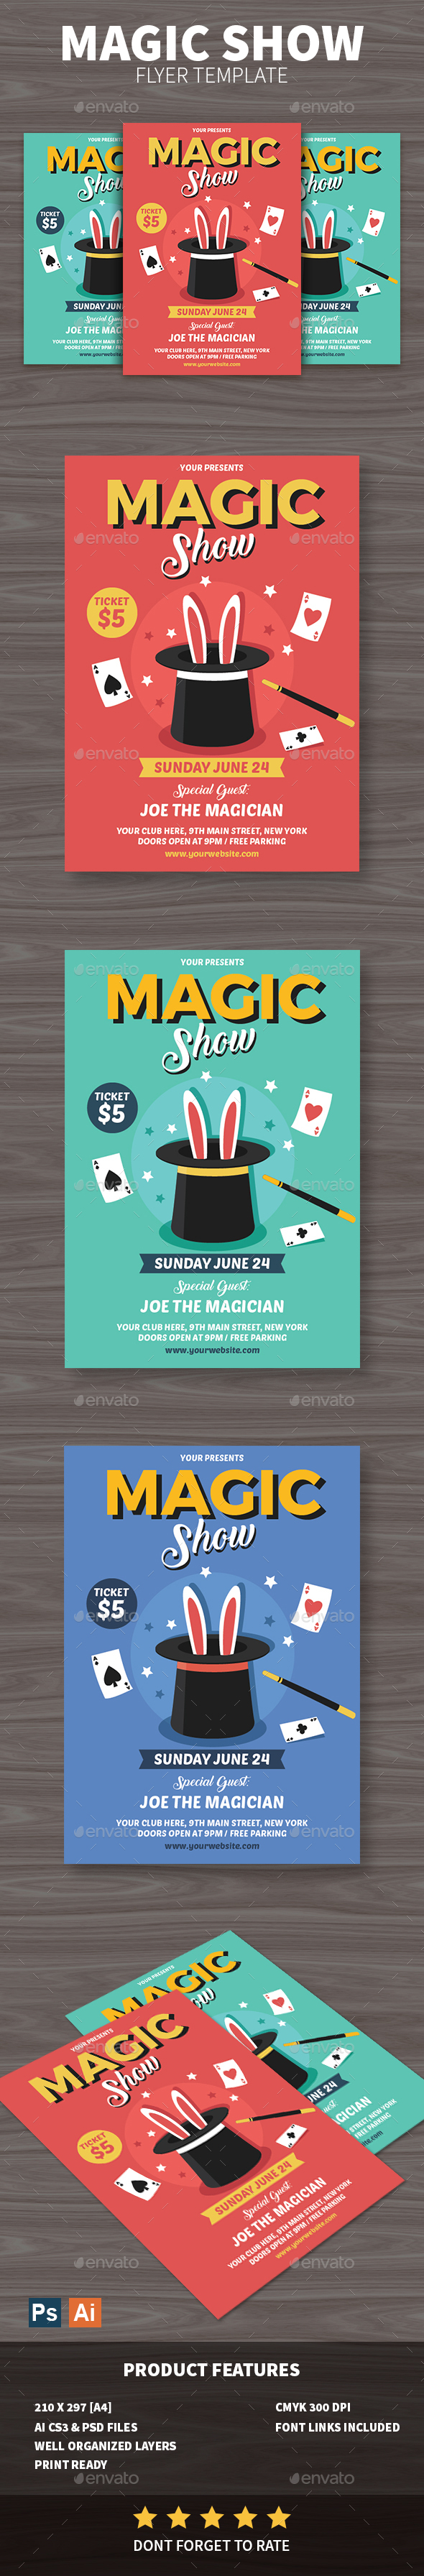 Magic Show Flyer - Events Flyers